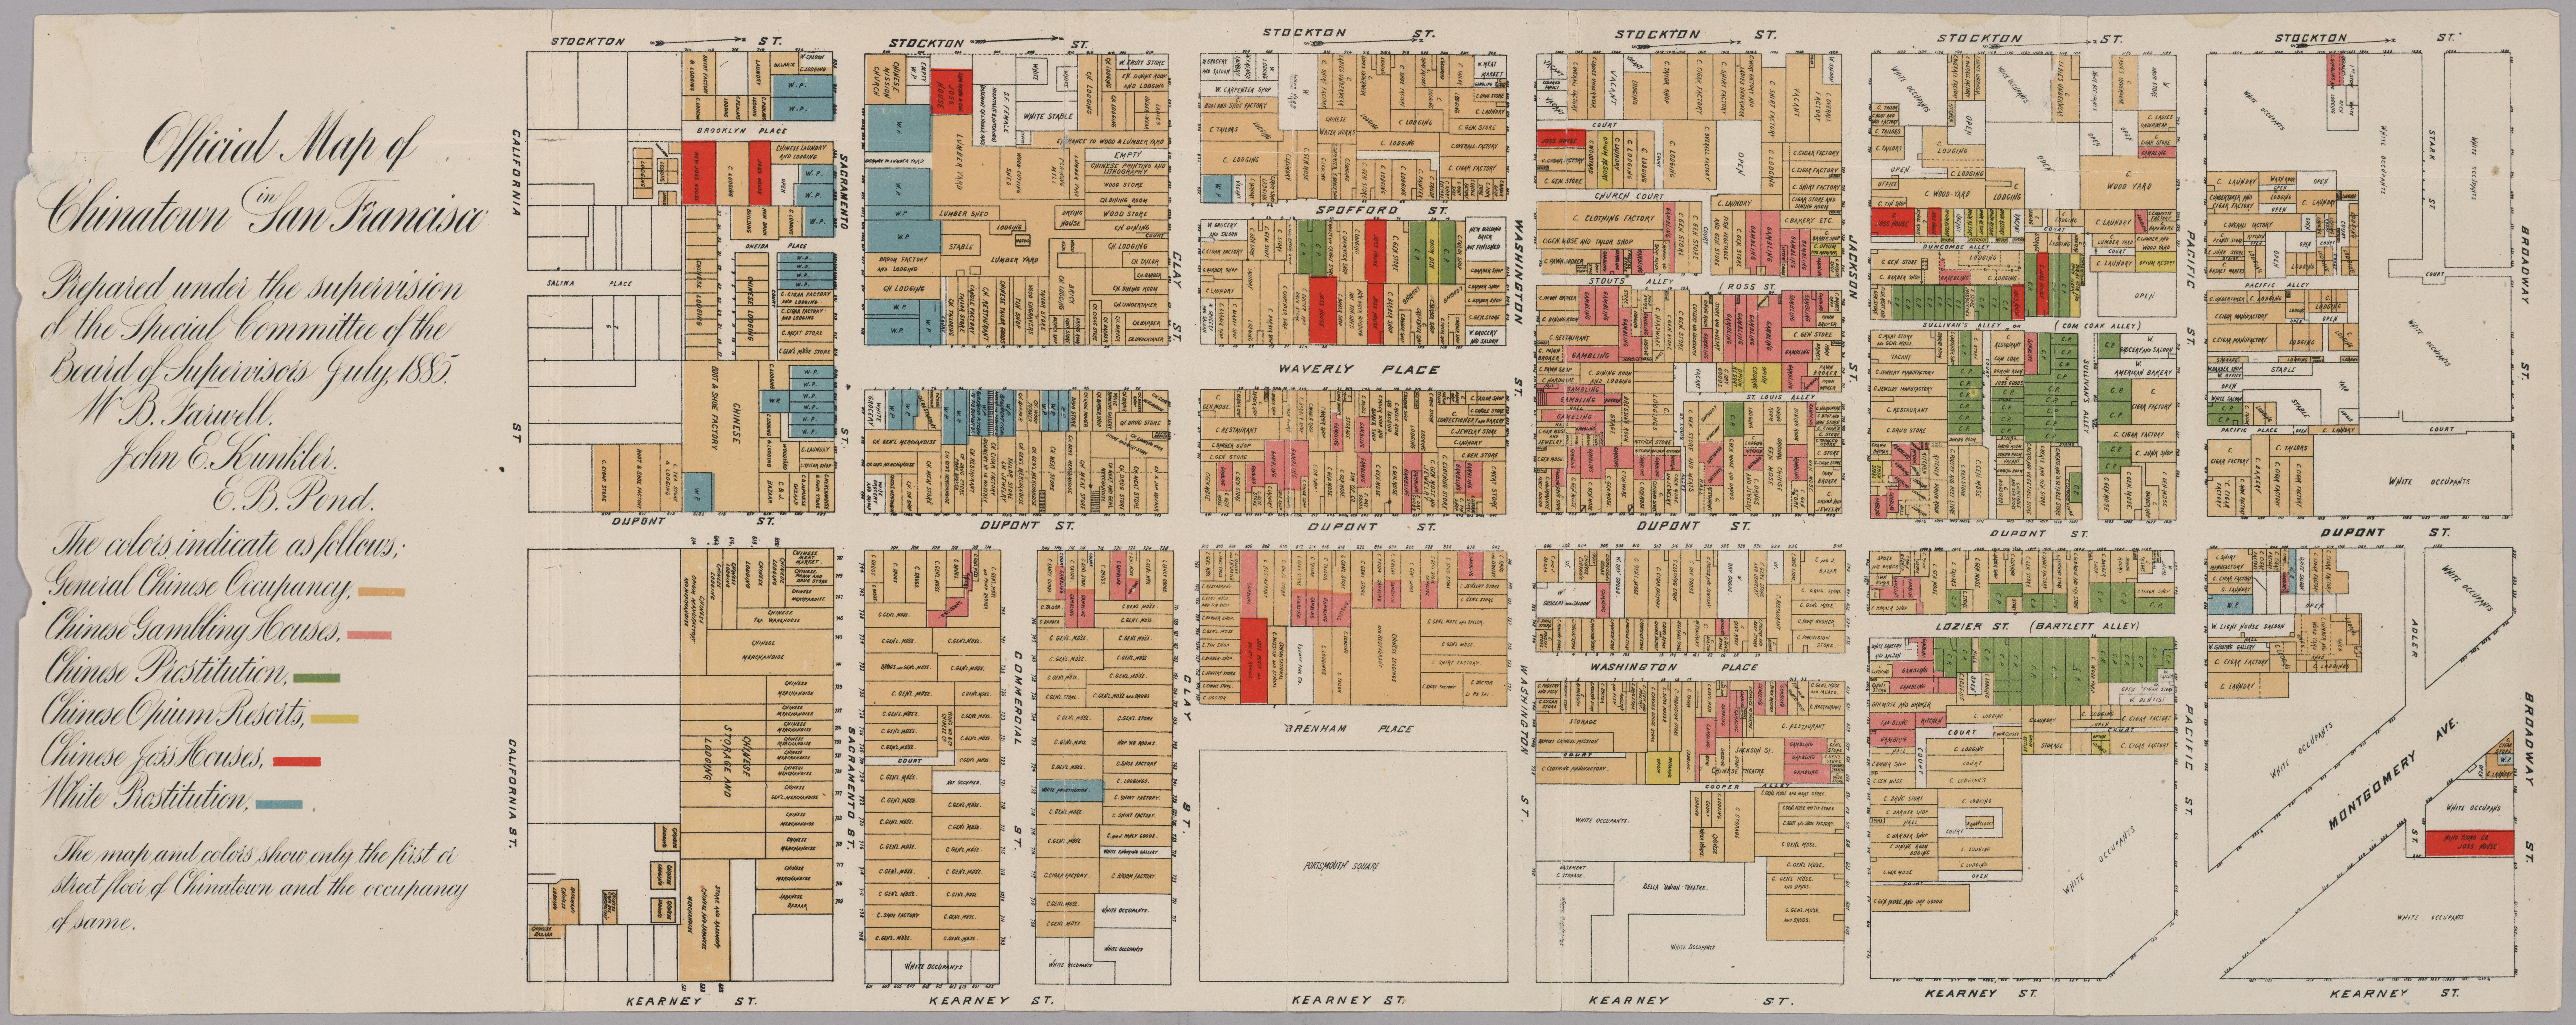 37 maps that explain how america is a nation of immigrants vox when louisville rioted against catholic immigrants nvjuhfo Choice Image